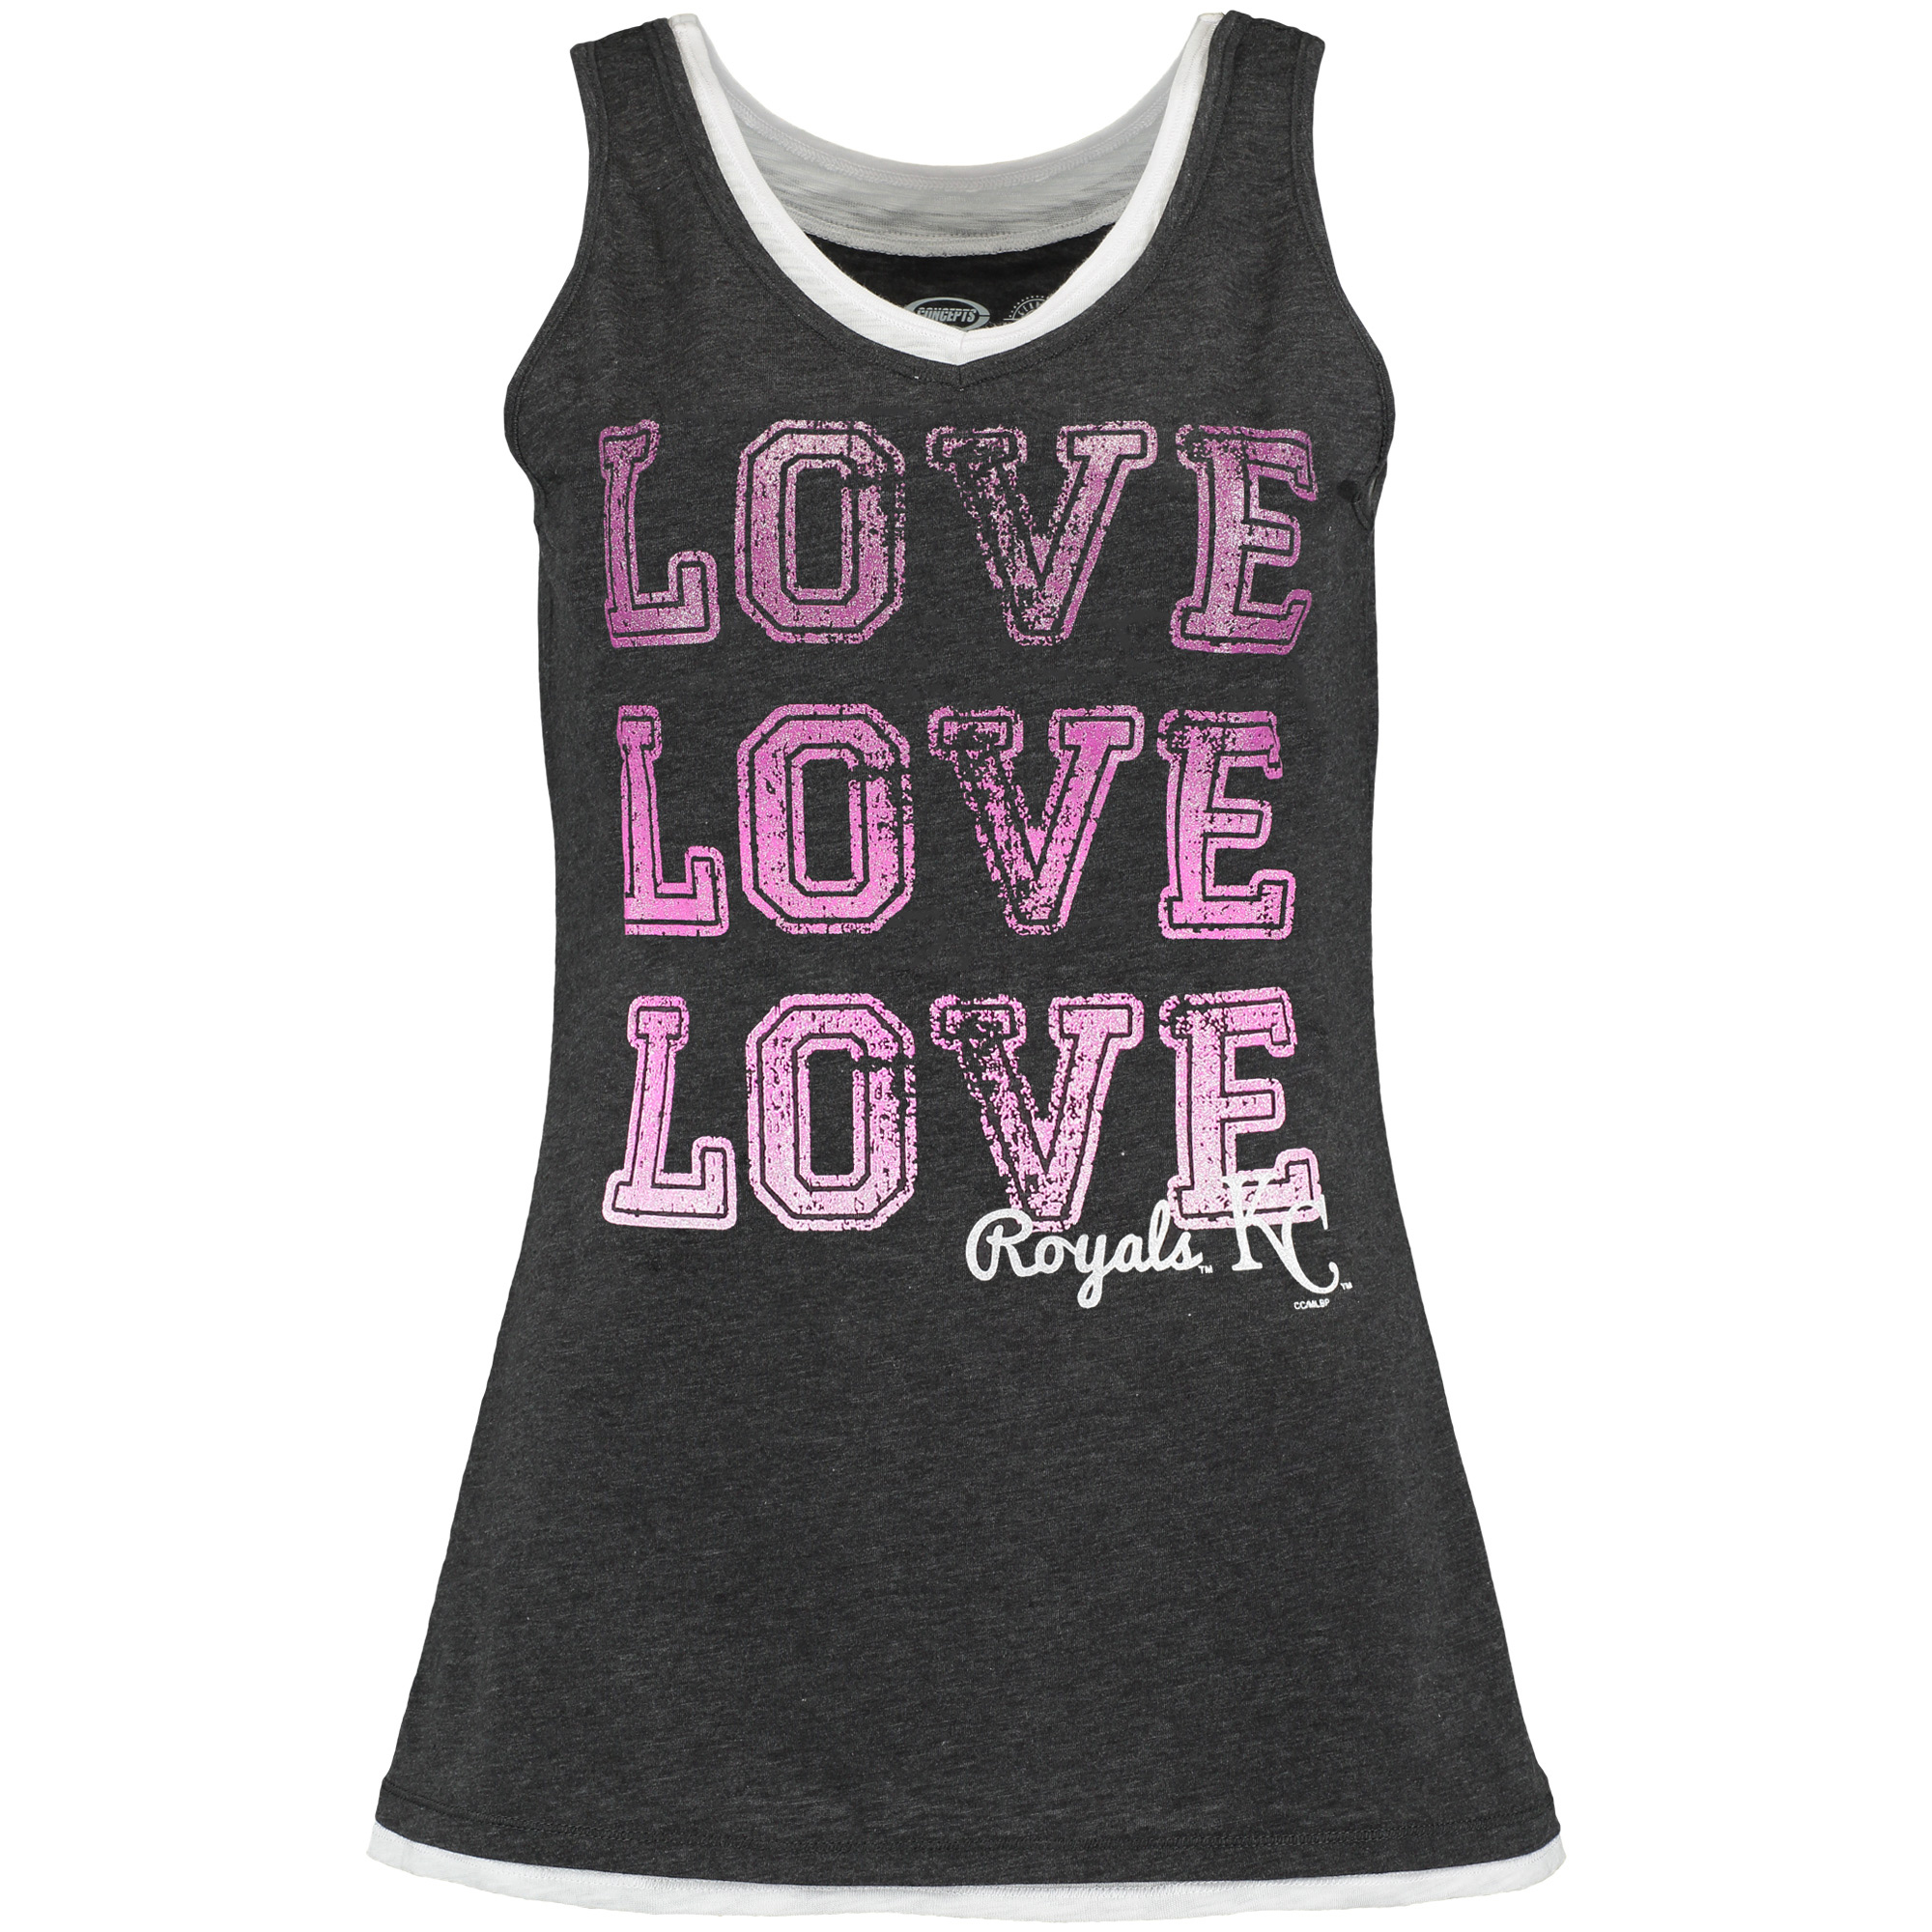 Kansas City Royals Concepts Sport Women's Crush Layered Tank Top - Charcoal